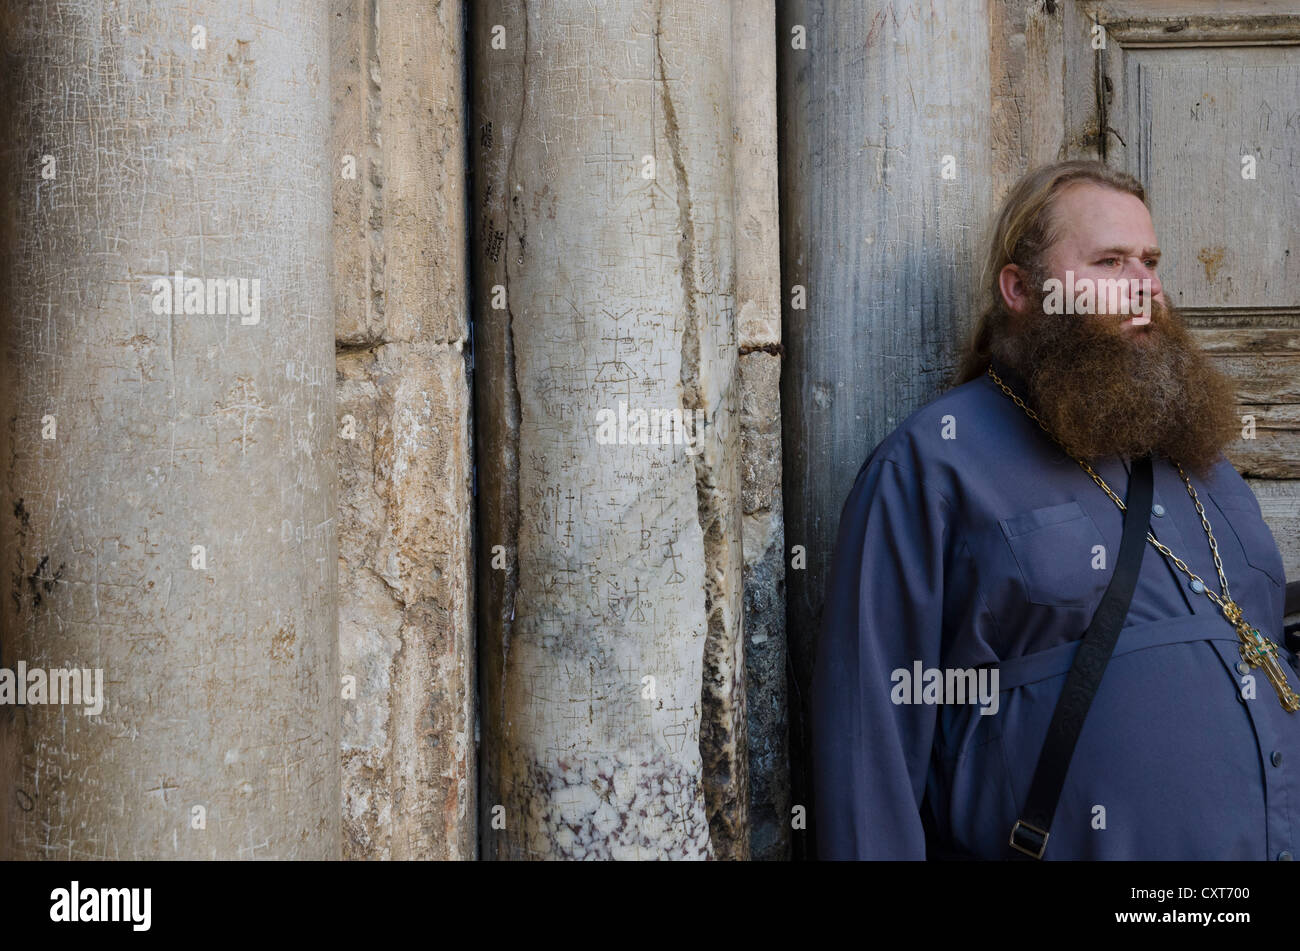 Russian orthodox priest standing next to columns at the entrance to the Holy Sepulcher. Jerusalem Old City. Israel. - Stock Image